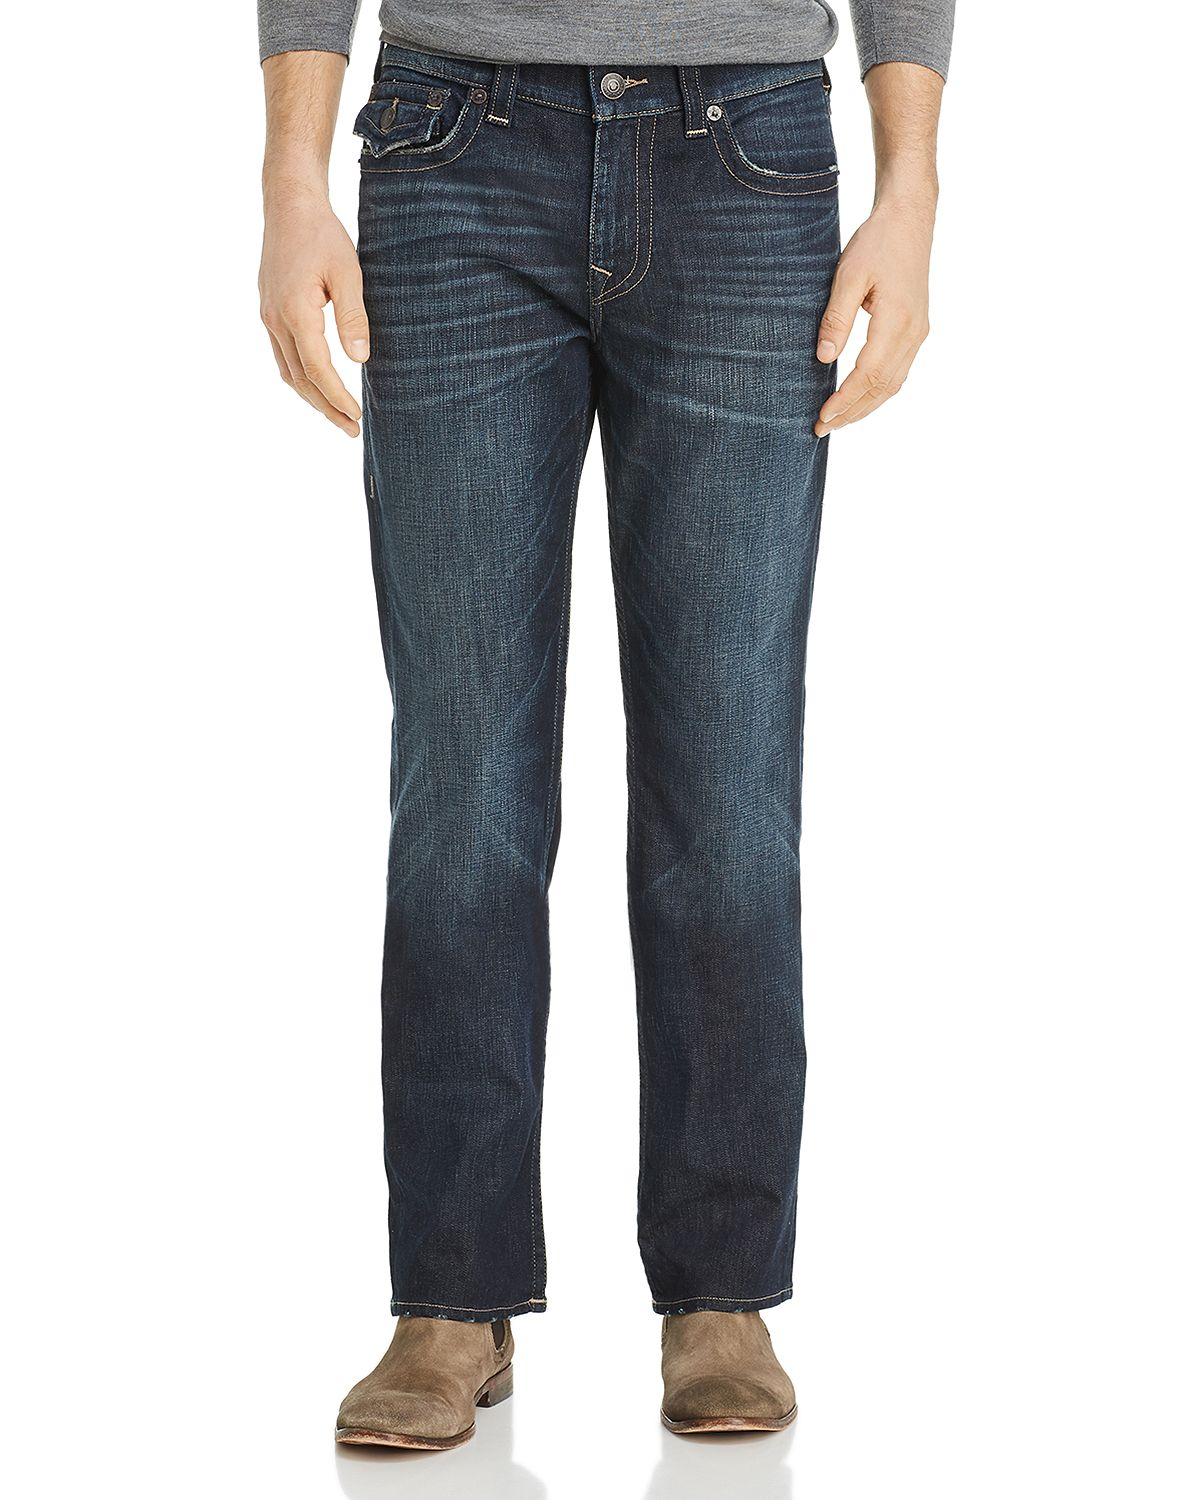 True Religion Ricky Flap Straight Fit Jeans In Dark Axle